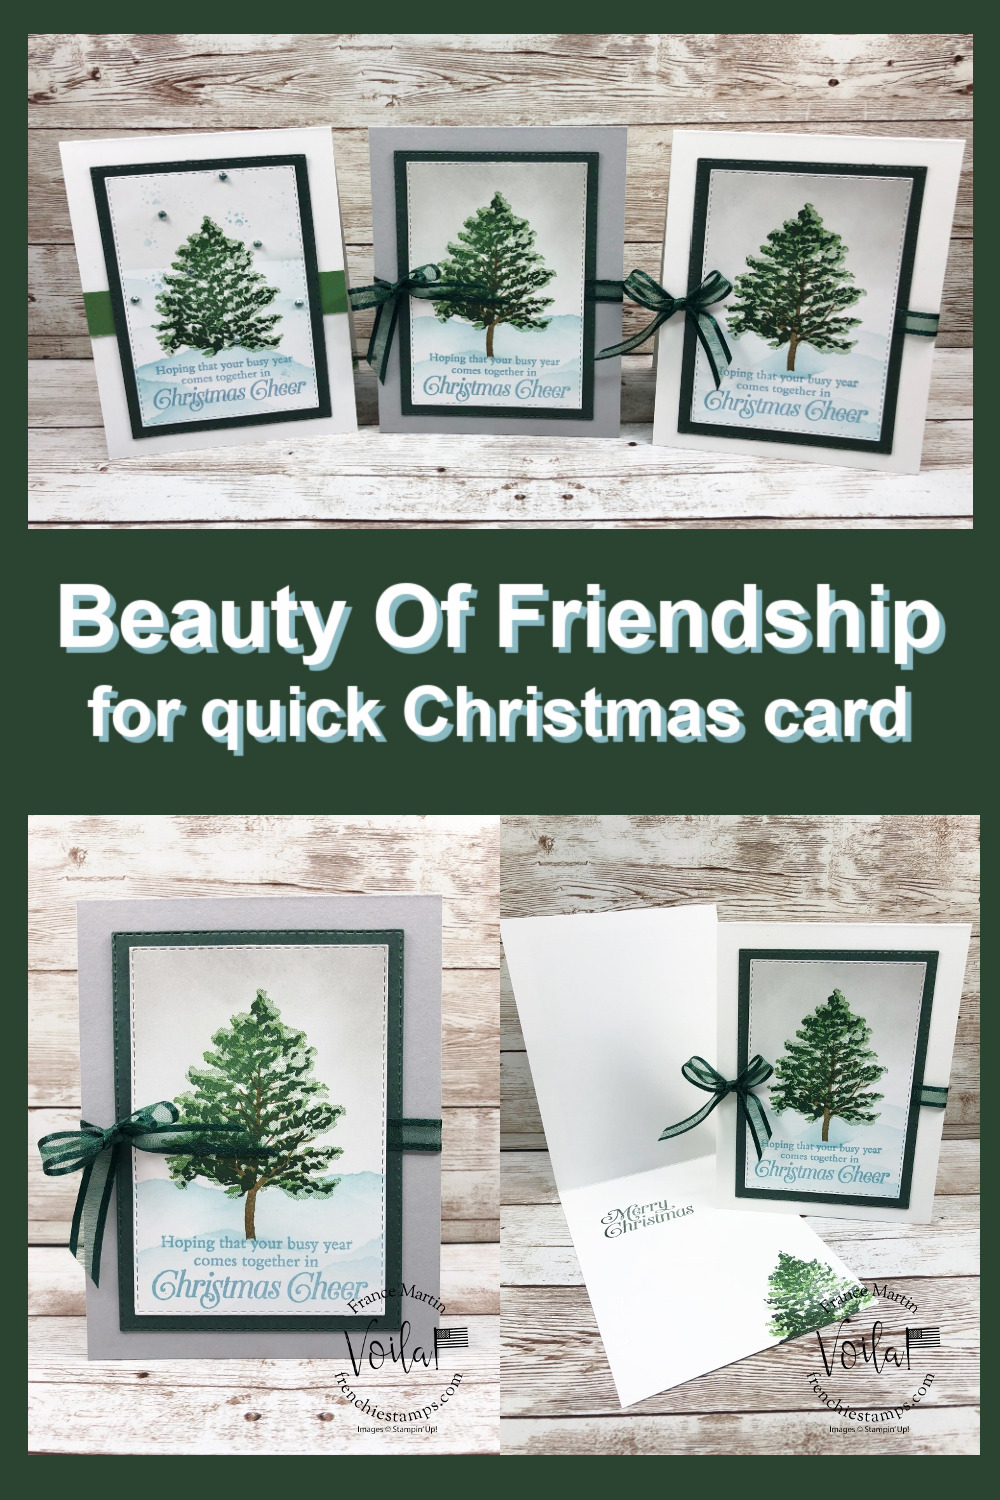 Beauty Of Friendship for Christmas Card.